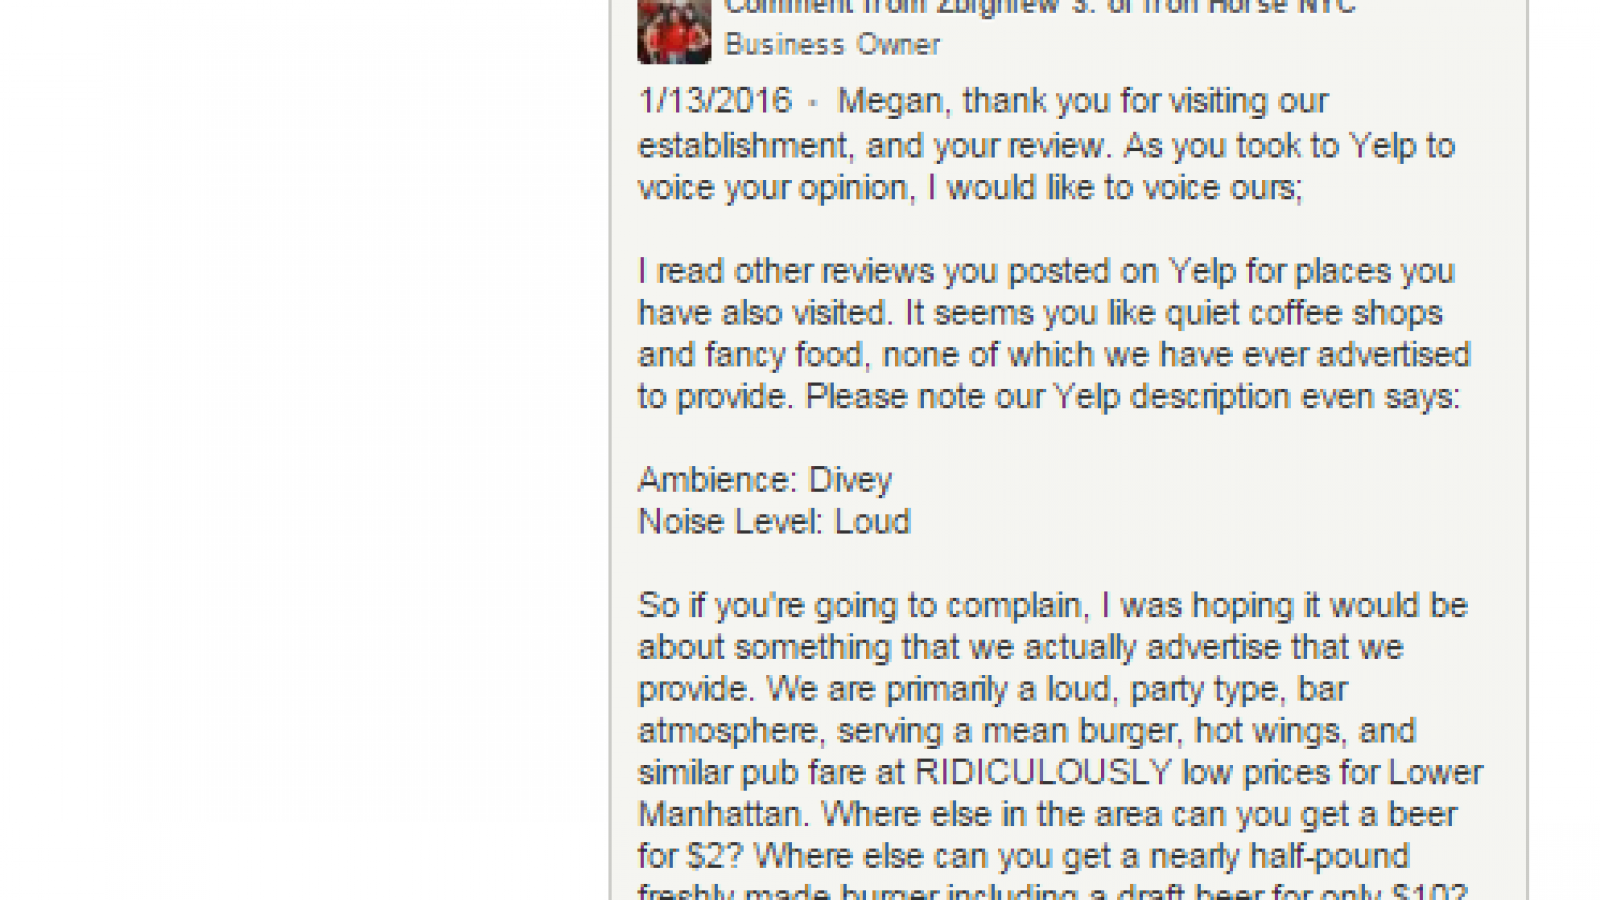 Congress Just Gave You the Right to Leave a Nasty Yelp Review